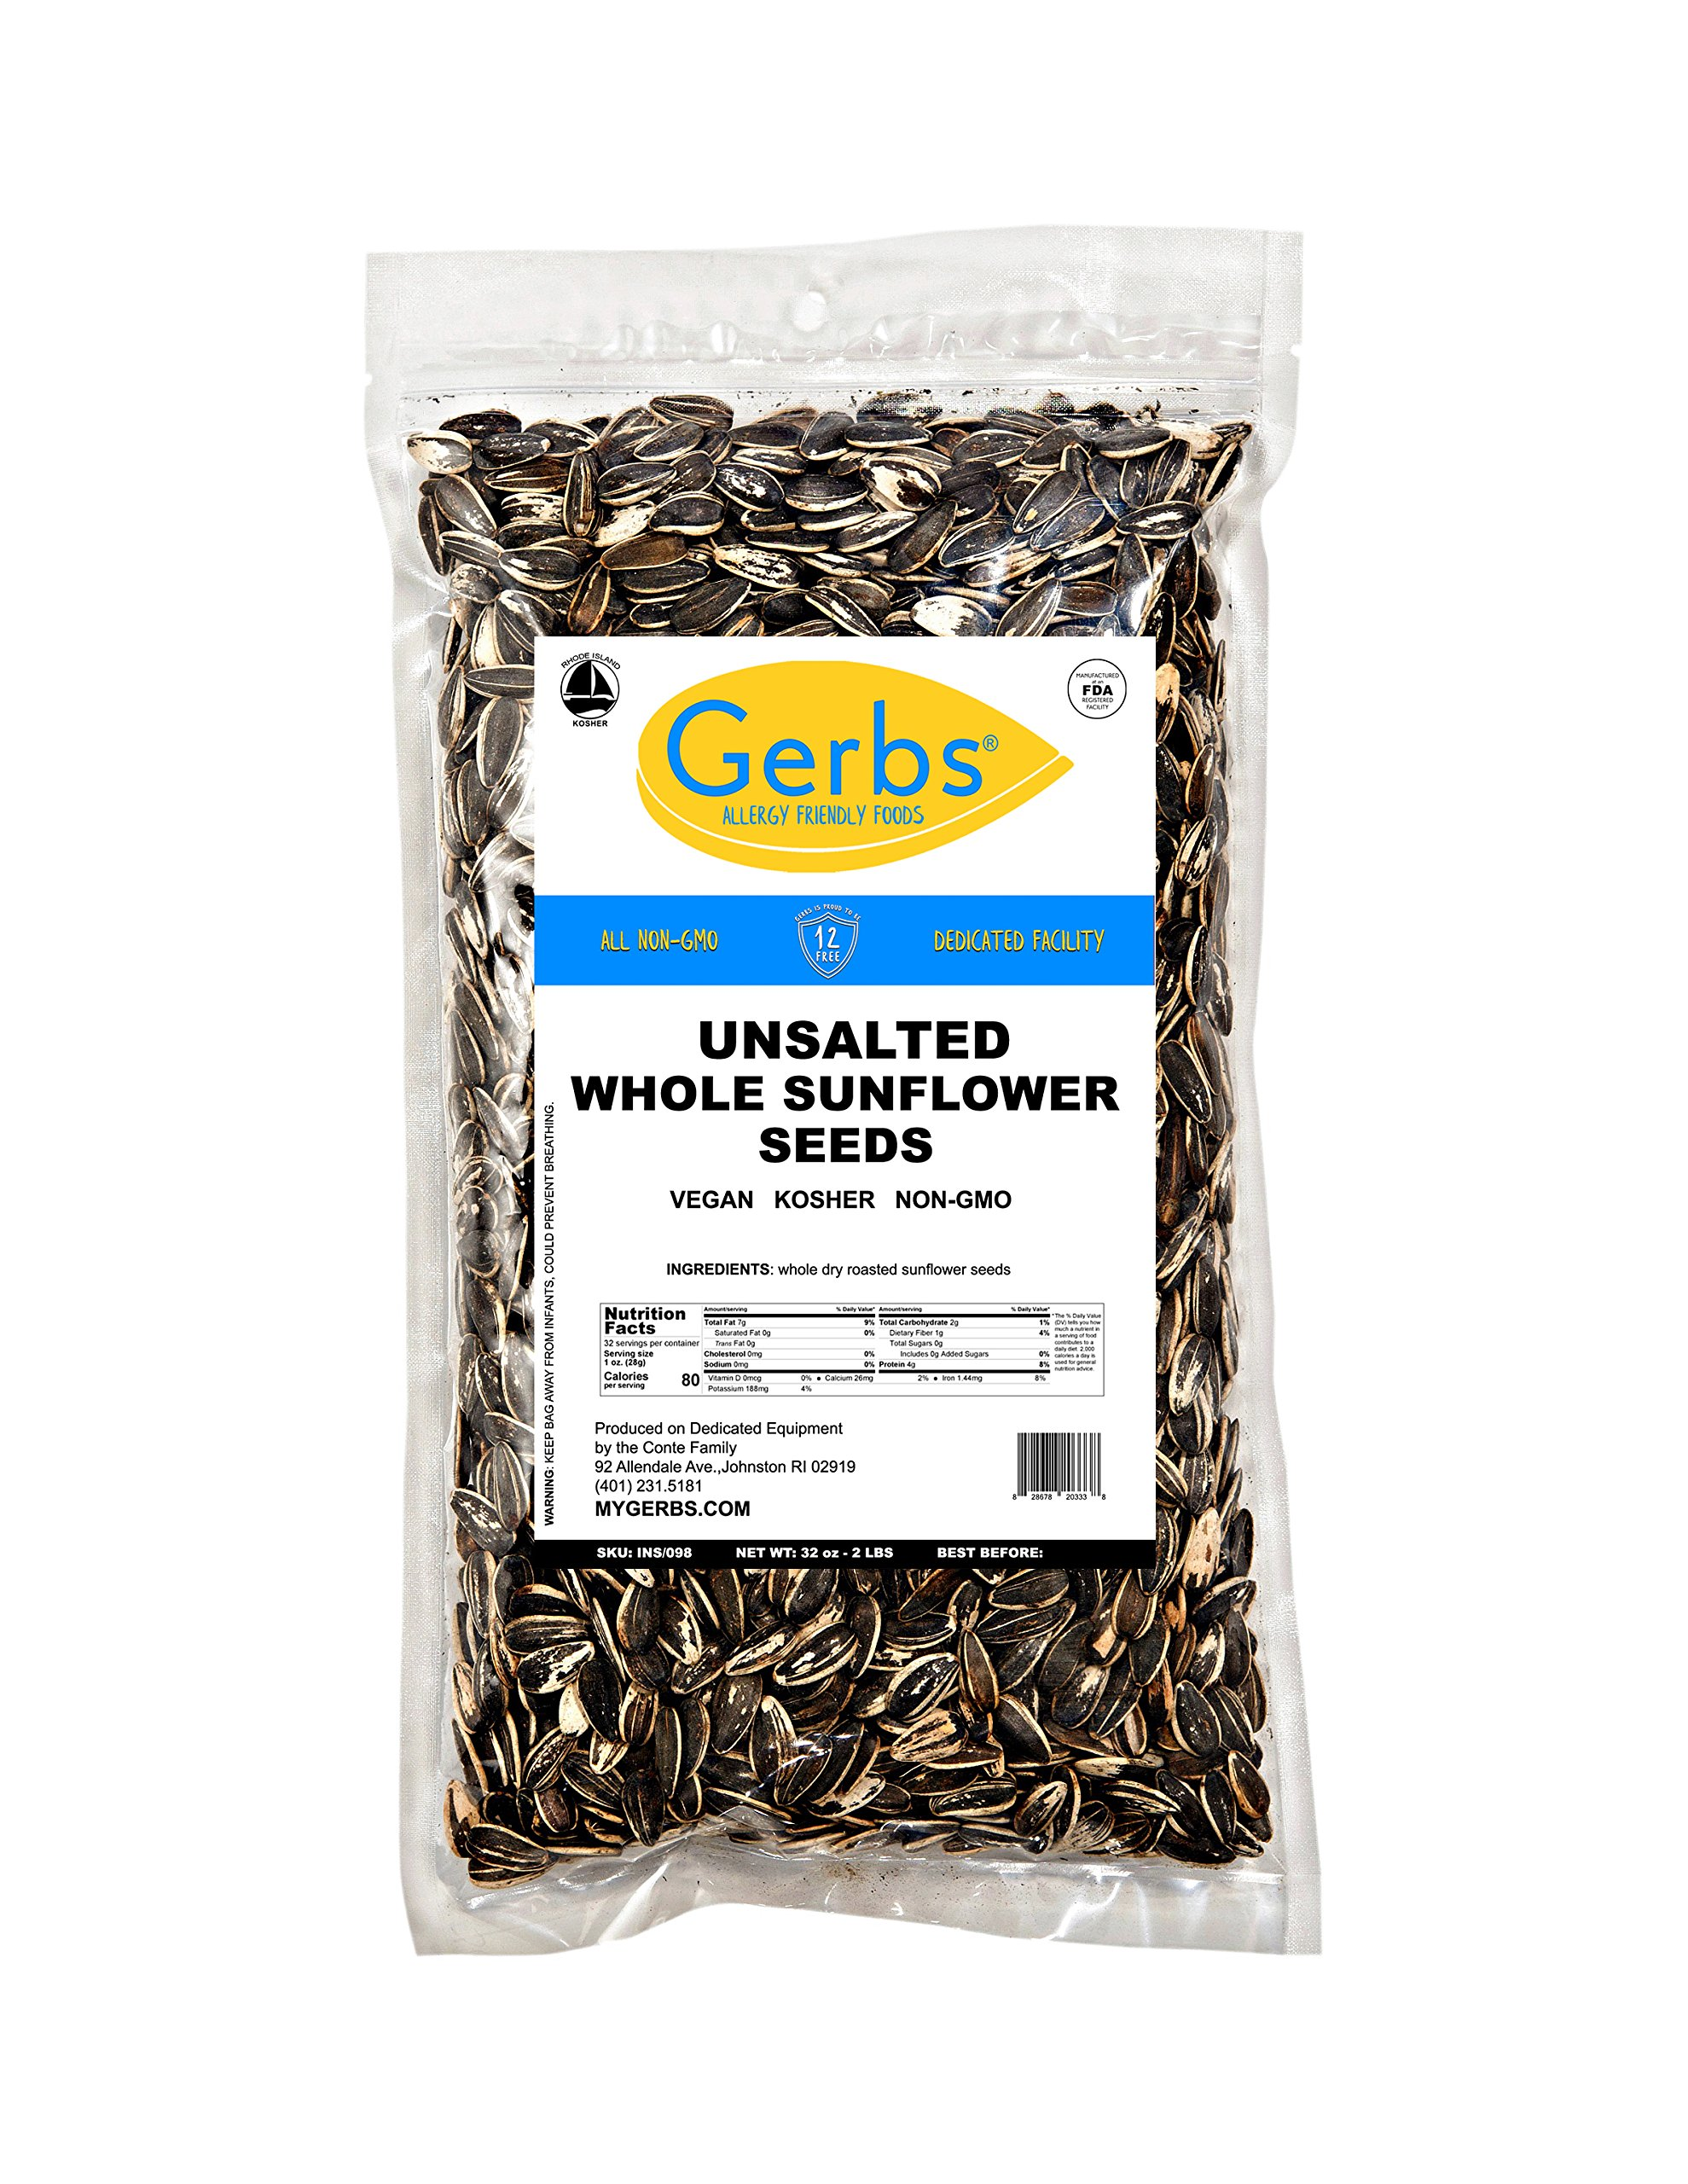 GERBS Unsalted Whole Sunflower Seeds by 2 LBS - Top 12 Food Allergy Free & NON GMO - Vegan & Kosher - In-Shell Dry Roasted Seeds Grown in USA